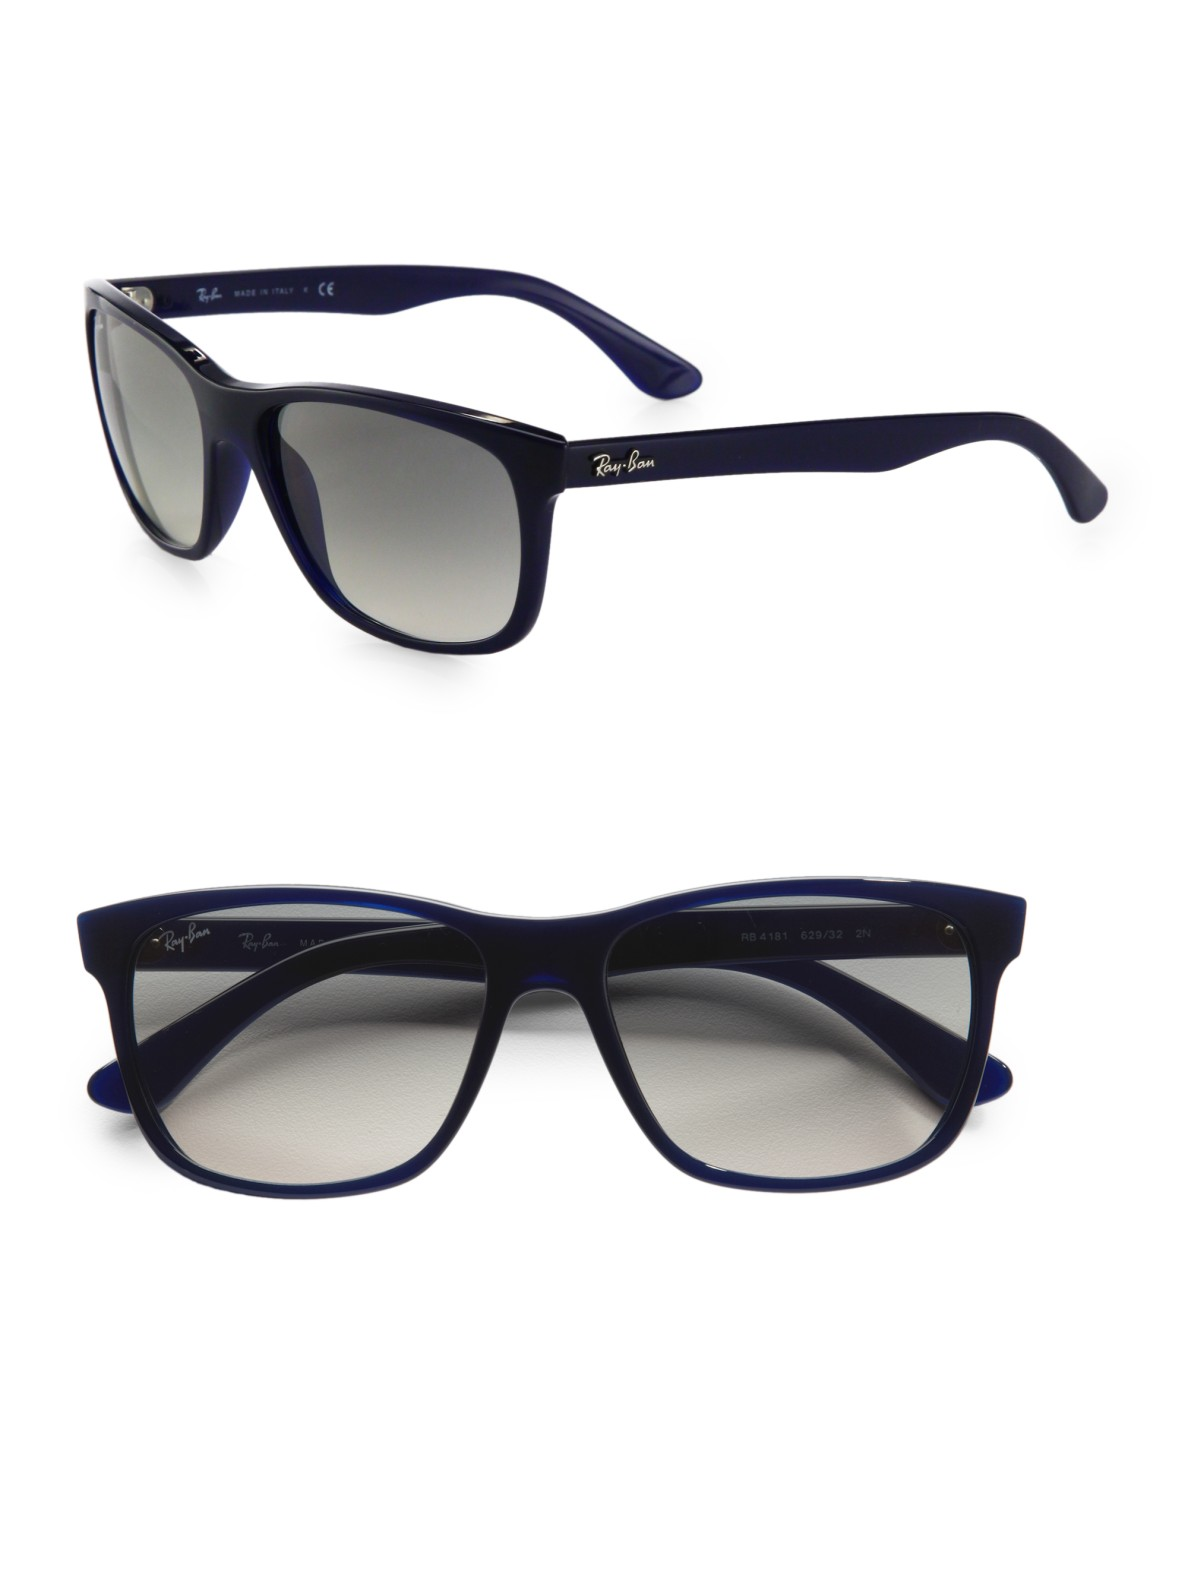 7dbed61e46d ... spain square ray ban sunglasses 89143 8d31b